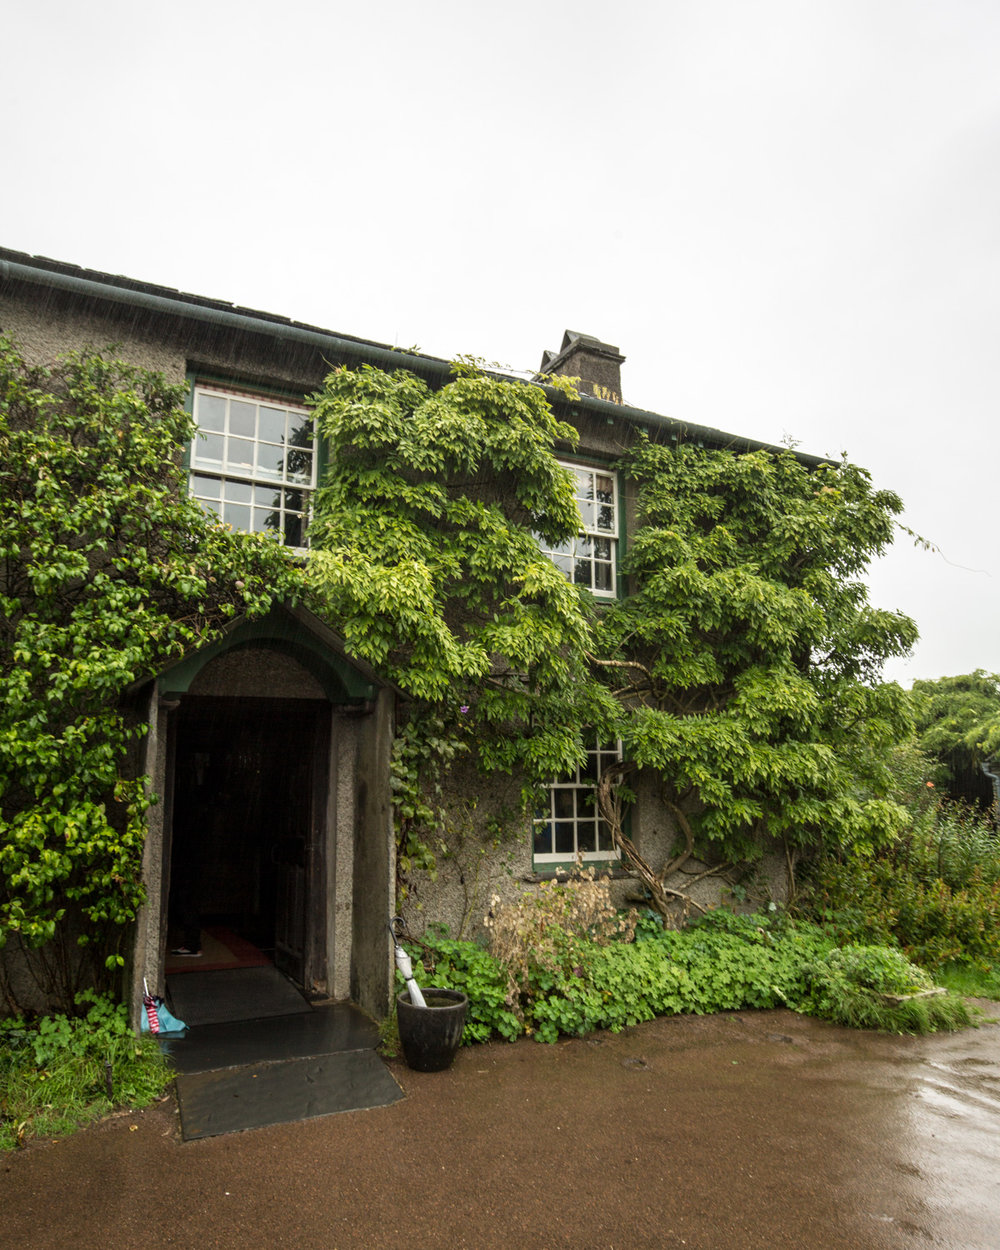 Best things to do in the Lake District - Beatrix Potters House, Hilltop